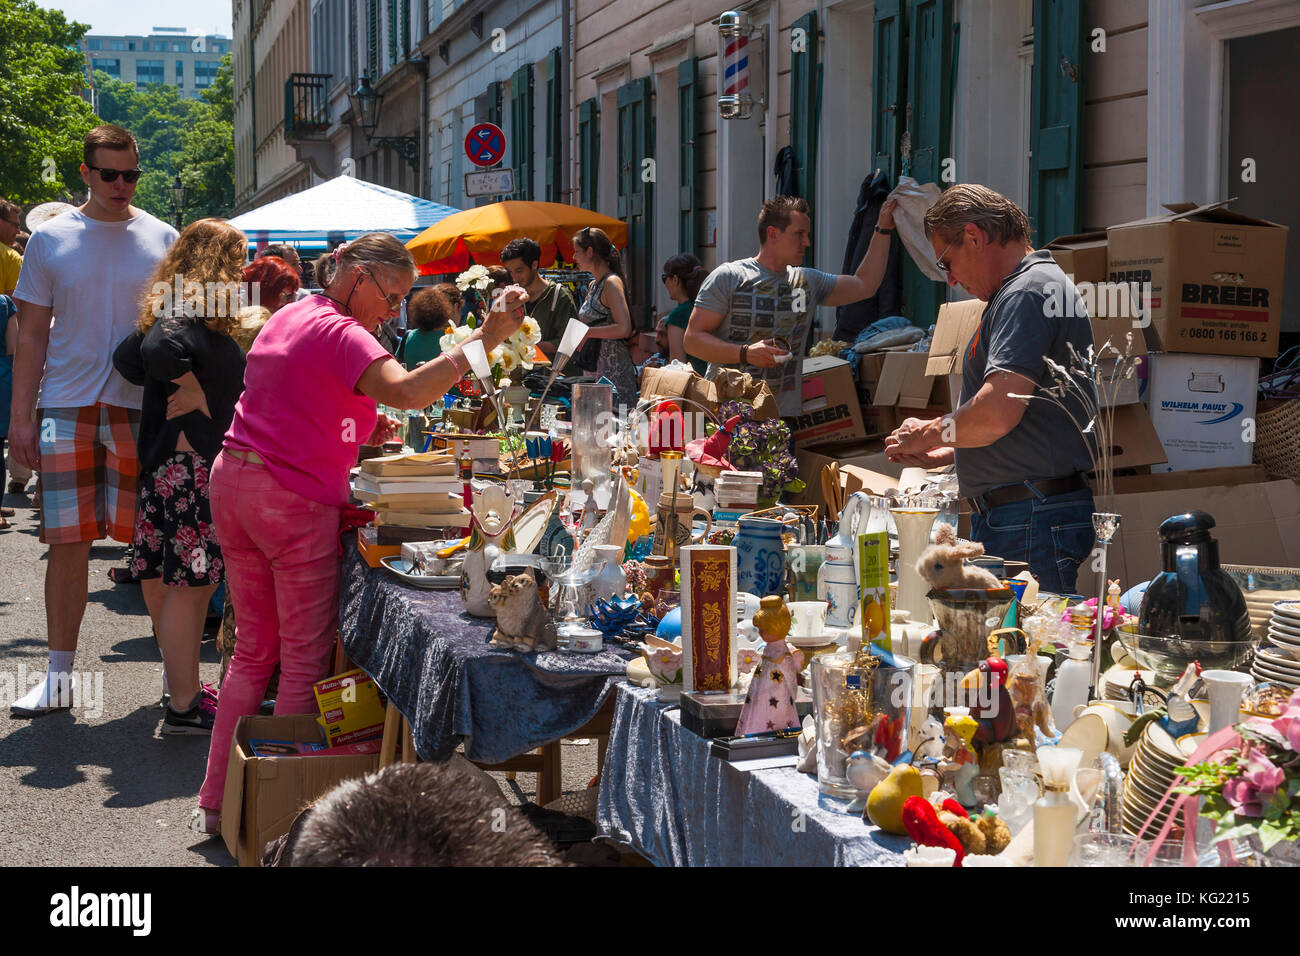 Ikea Trödelmarkt Duisburg Flohmarkt Stock Photos And Flohmarkt Stock Images Alamy